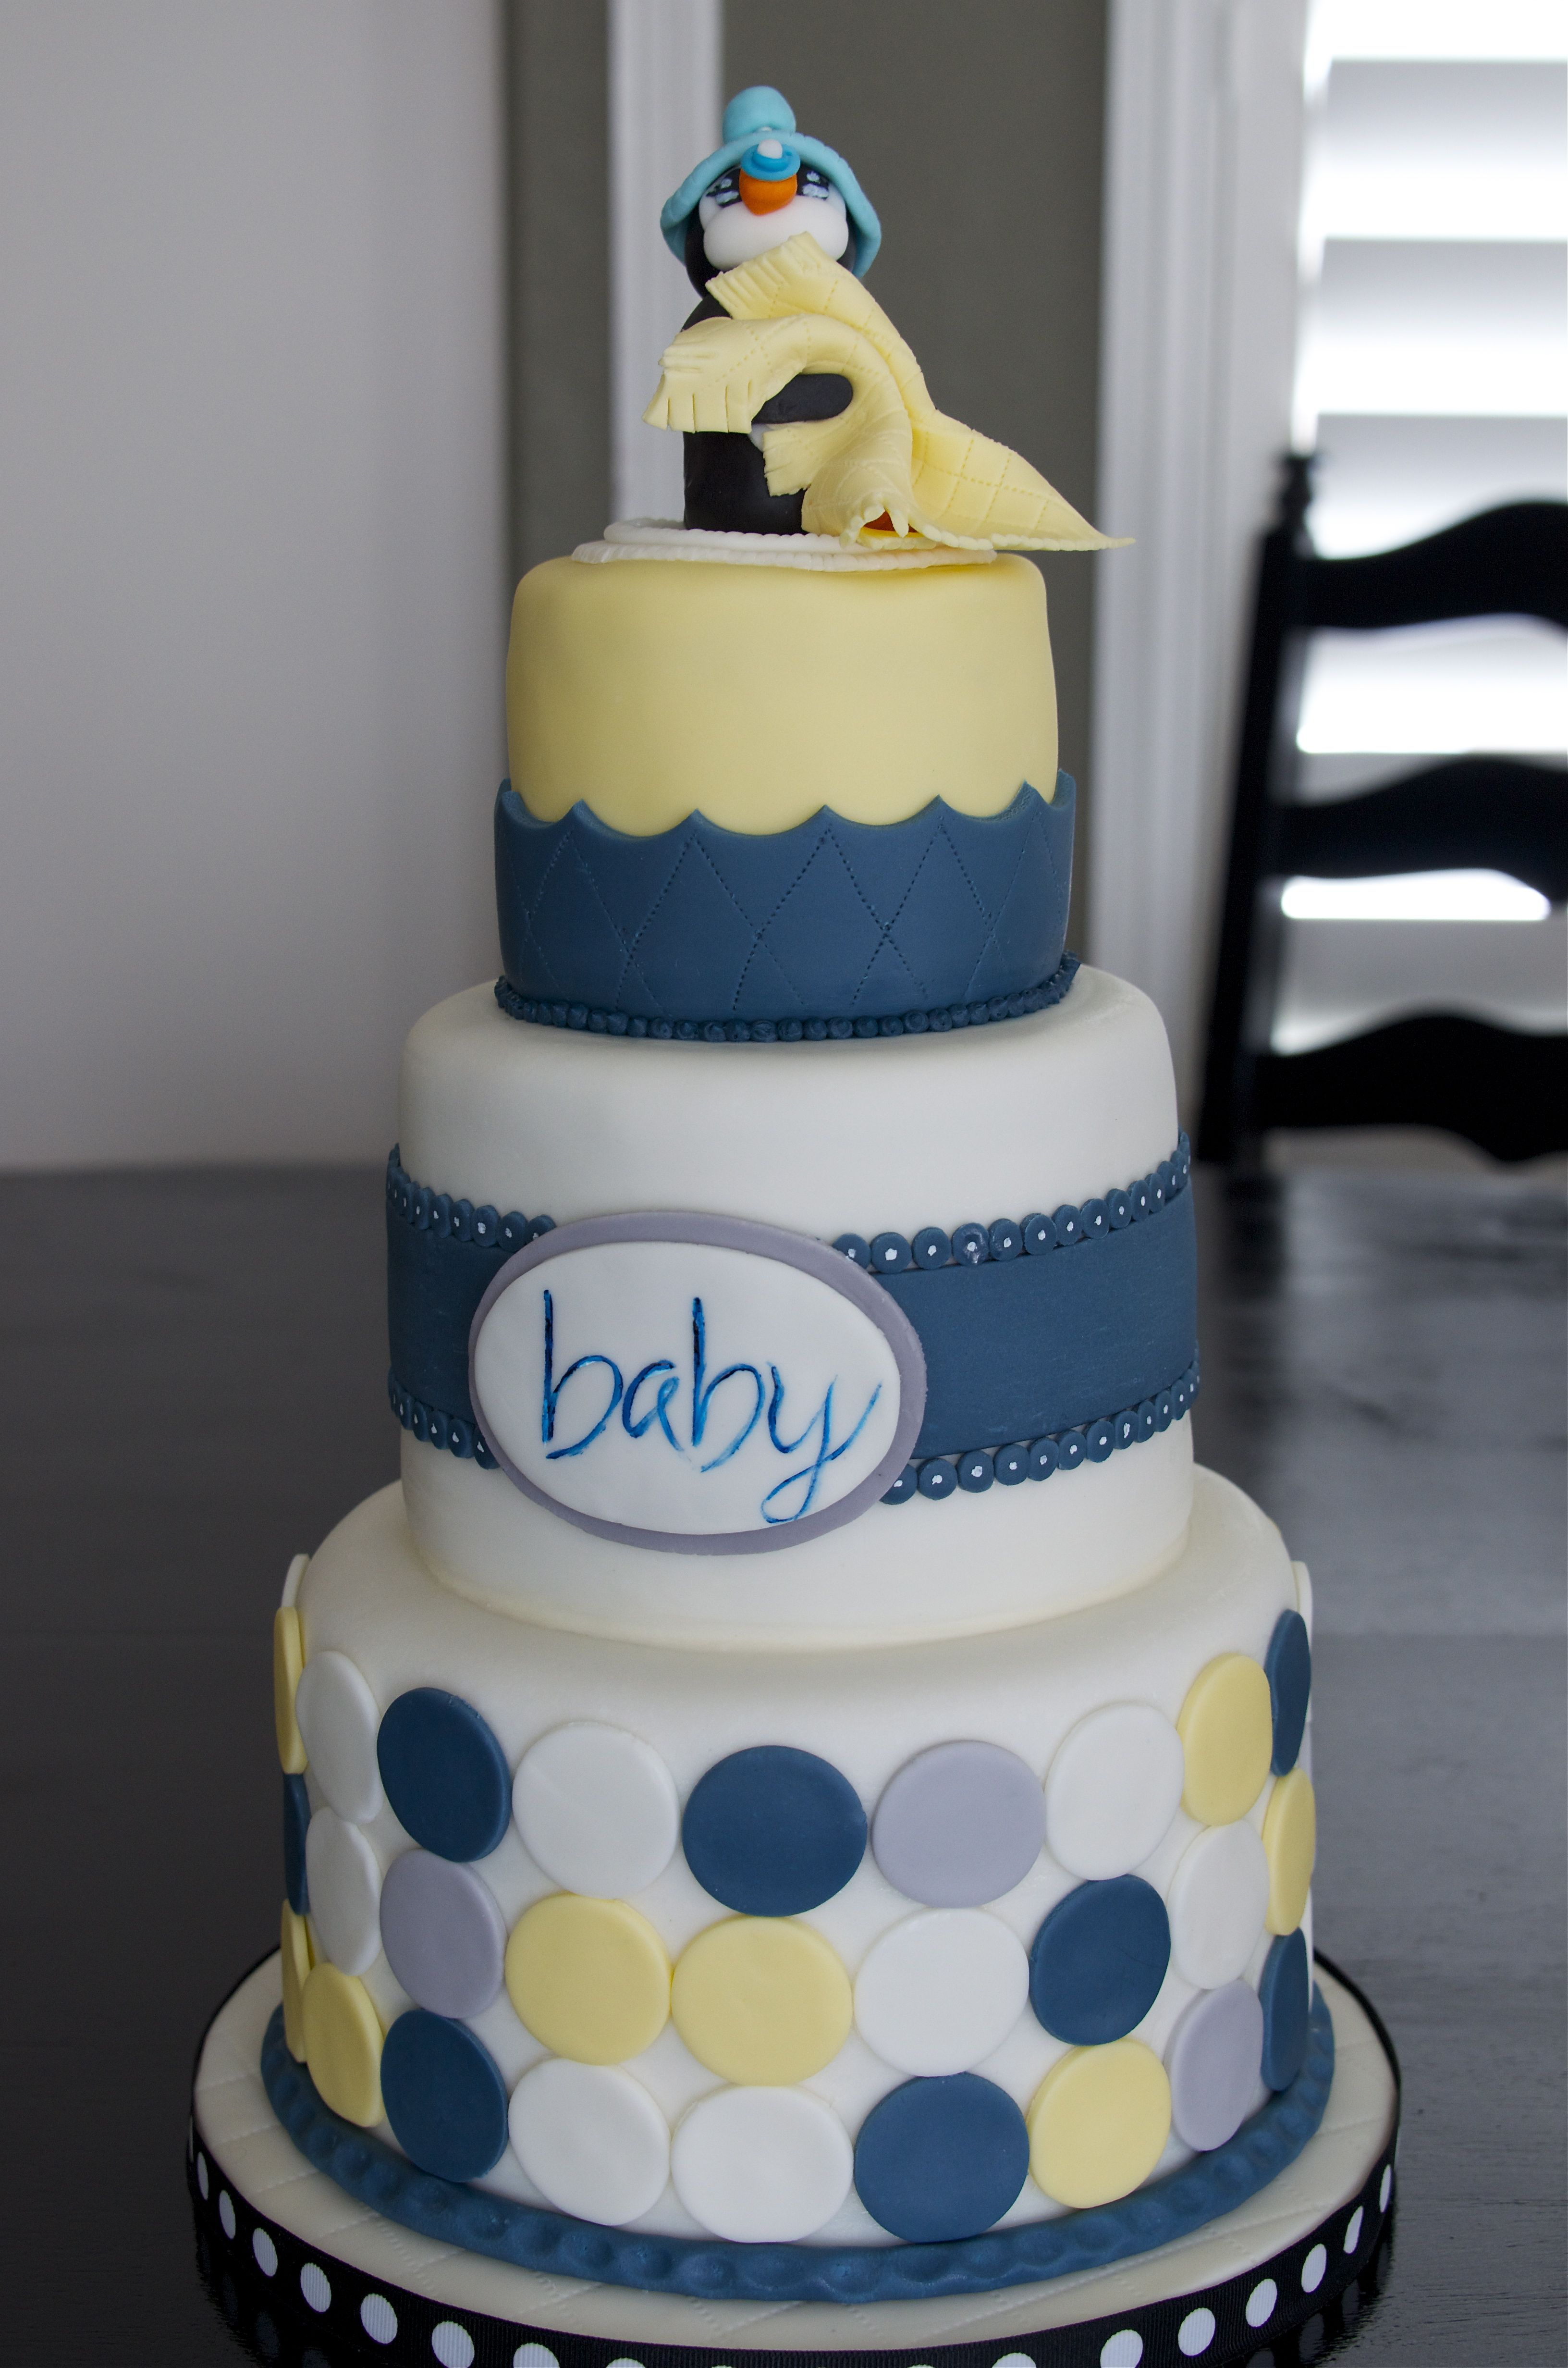 Baby Shower Cakes Blue ~ Baby shower cake nursery colors are navy